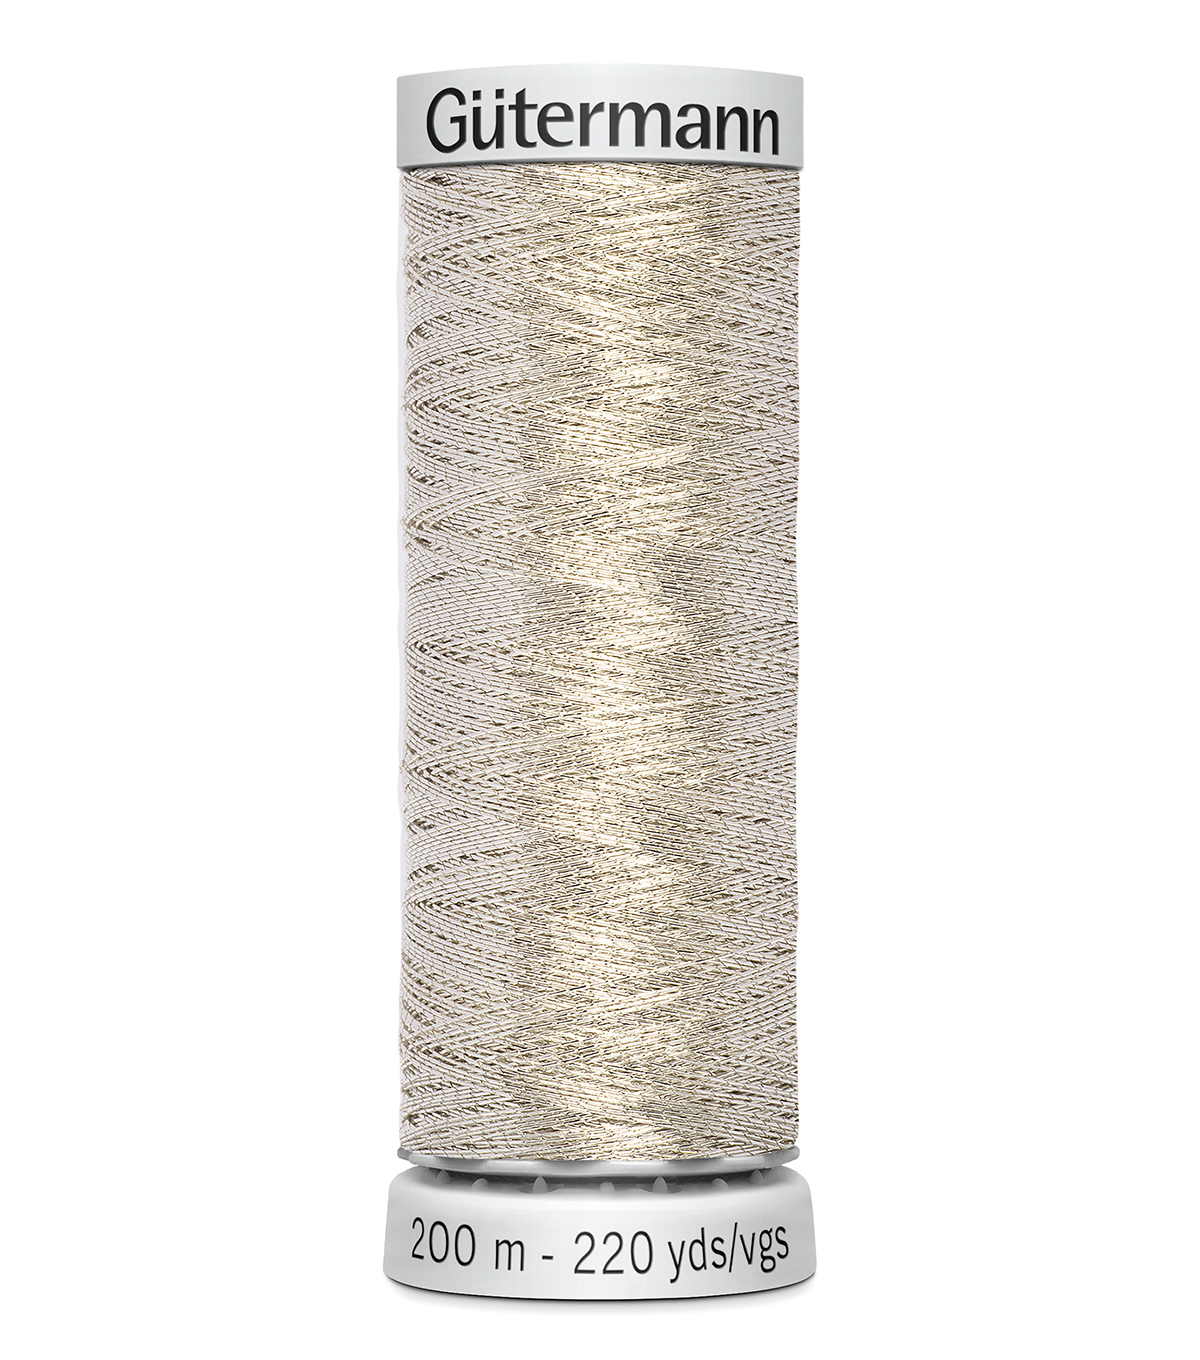 Gutermann 200M Dekor Thread, 200m Dekor Metallic-silver